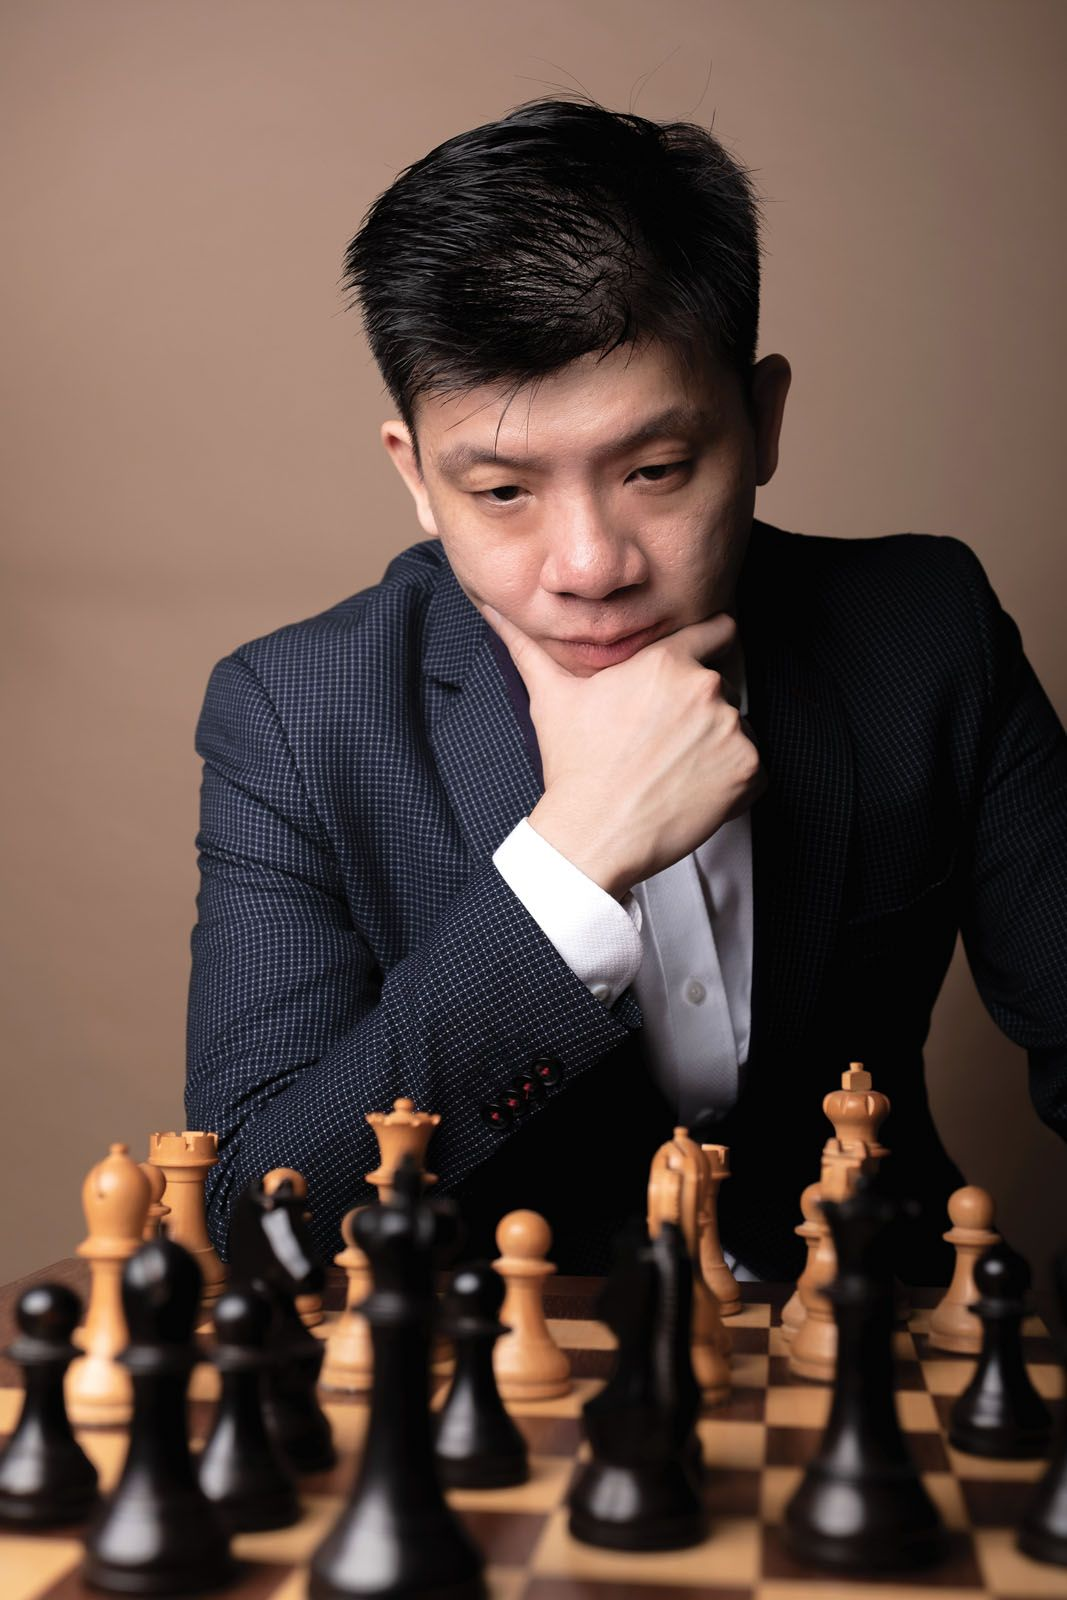 A typical training day for Singapore's chess grandmaster Kevin Goh begins with an hour-long run followed by a series of chess puzzles for two hours, before moving on to theoretical training (image by James Boban)